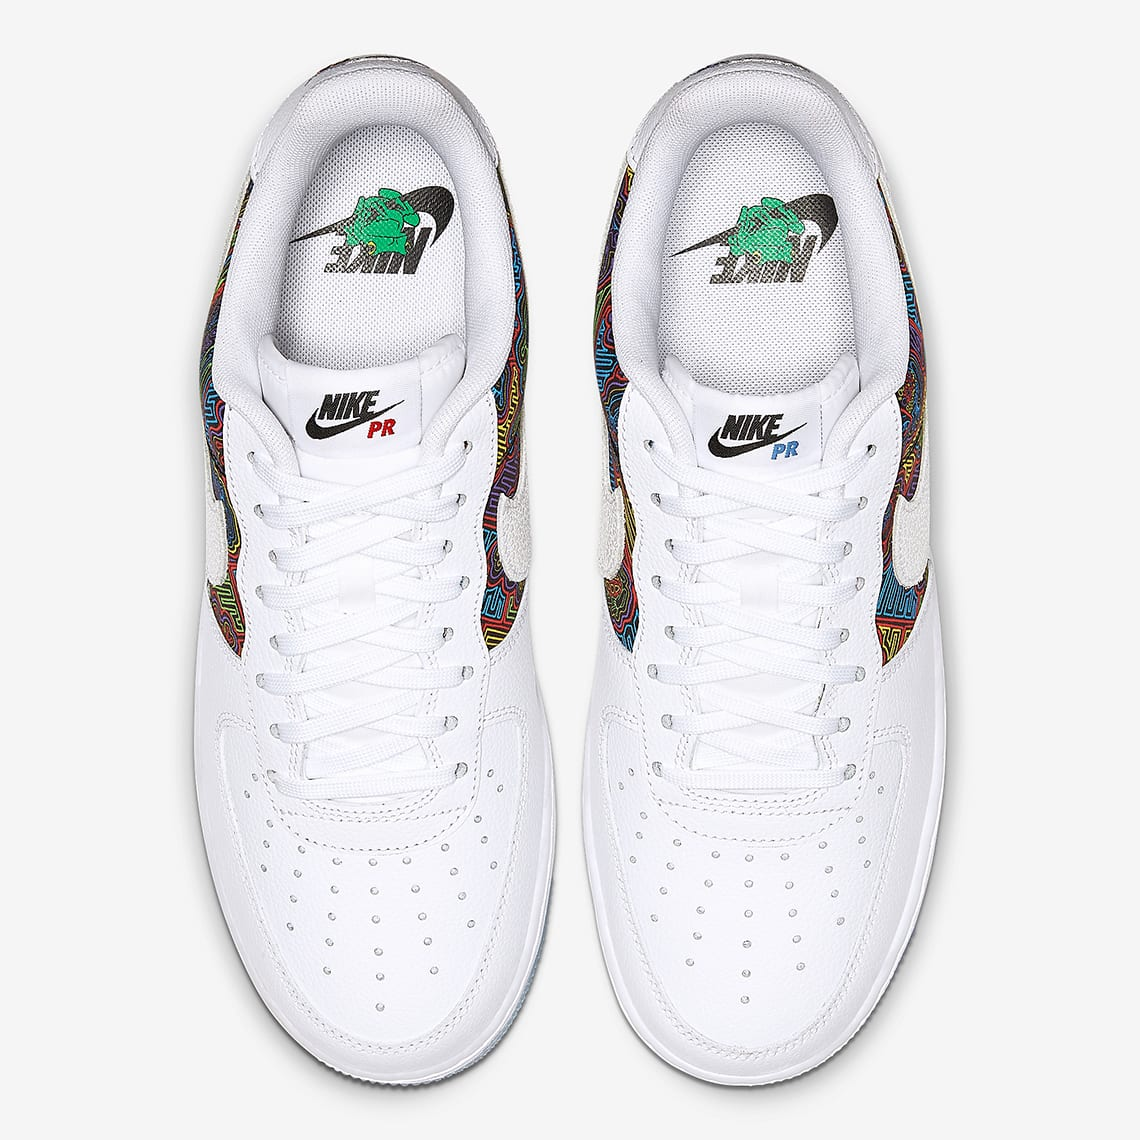 best cheap eaba6 d312d ... down on June 9, expect this PR-inspired Nike Air Force 1 to drop around  that time and retail for  100 USD on Nike.com. See it in better detail  below